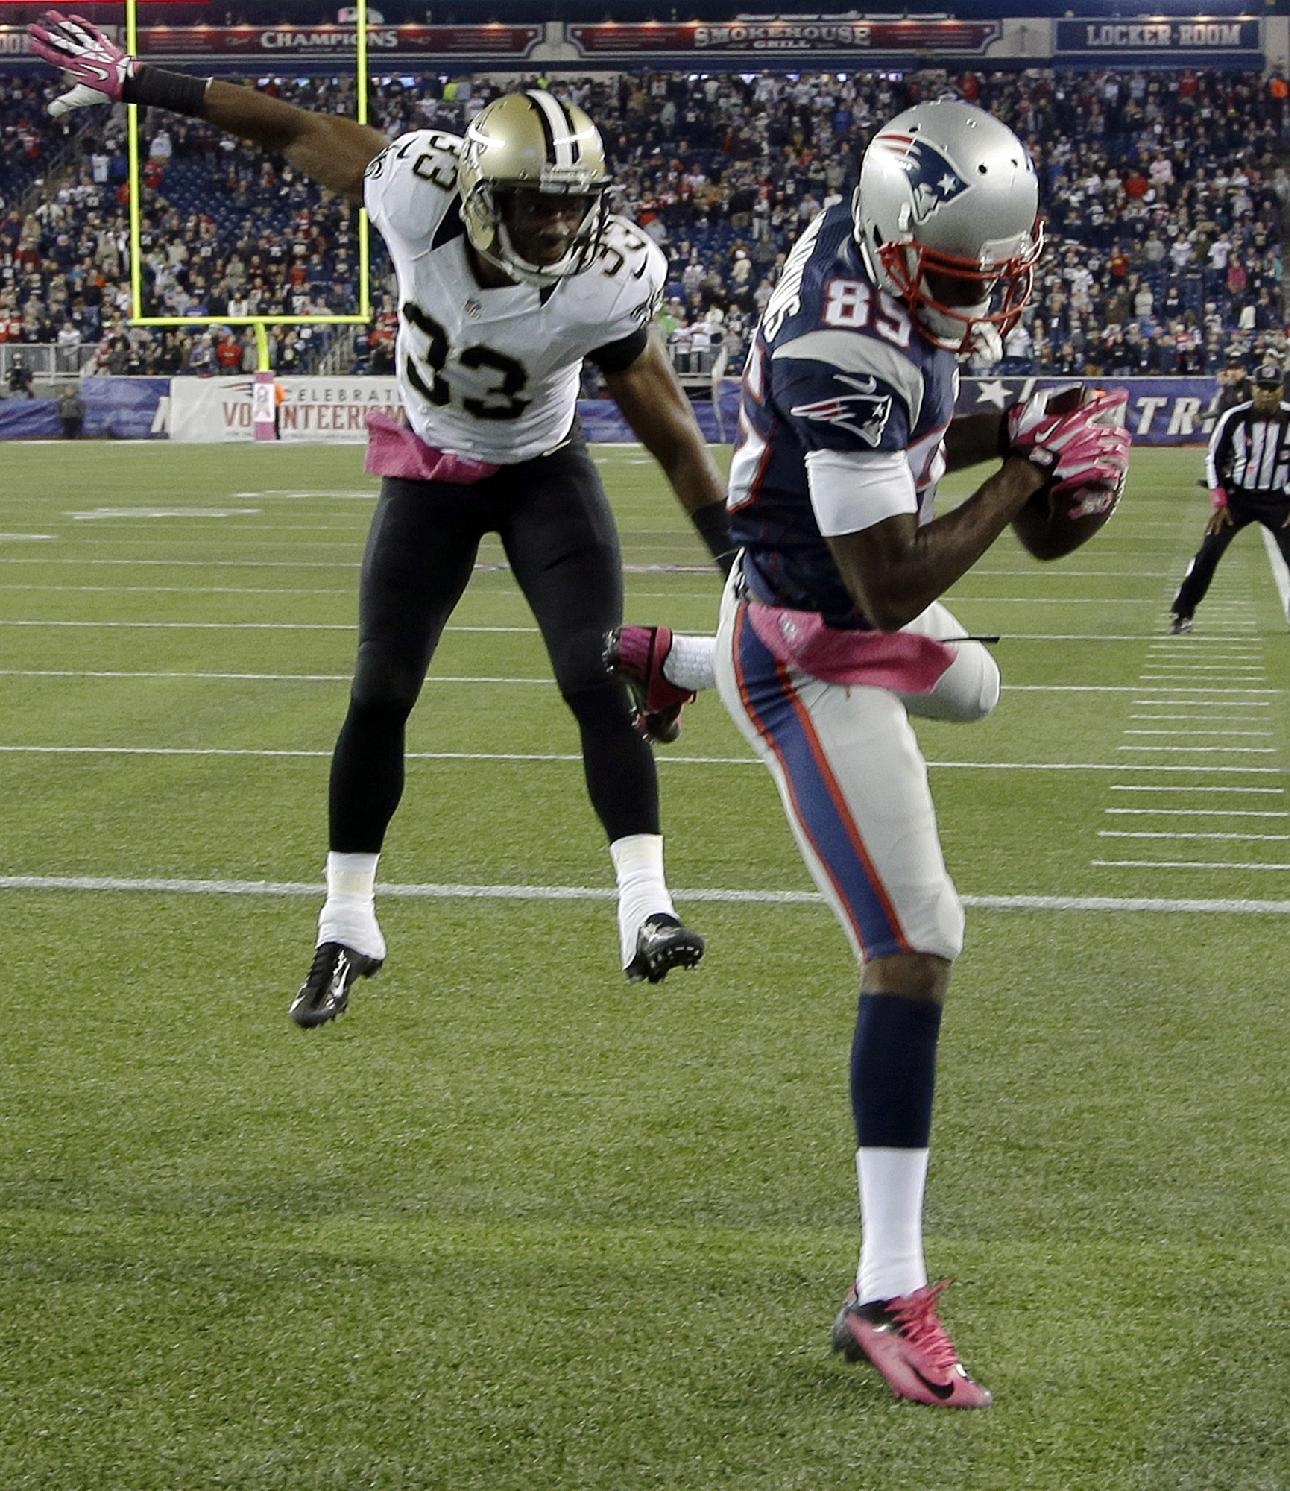 Kenbrell Thompkins comes down in the end zone with the winning TD to the chagrin of Jabari Greer. (AP)